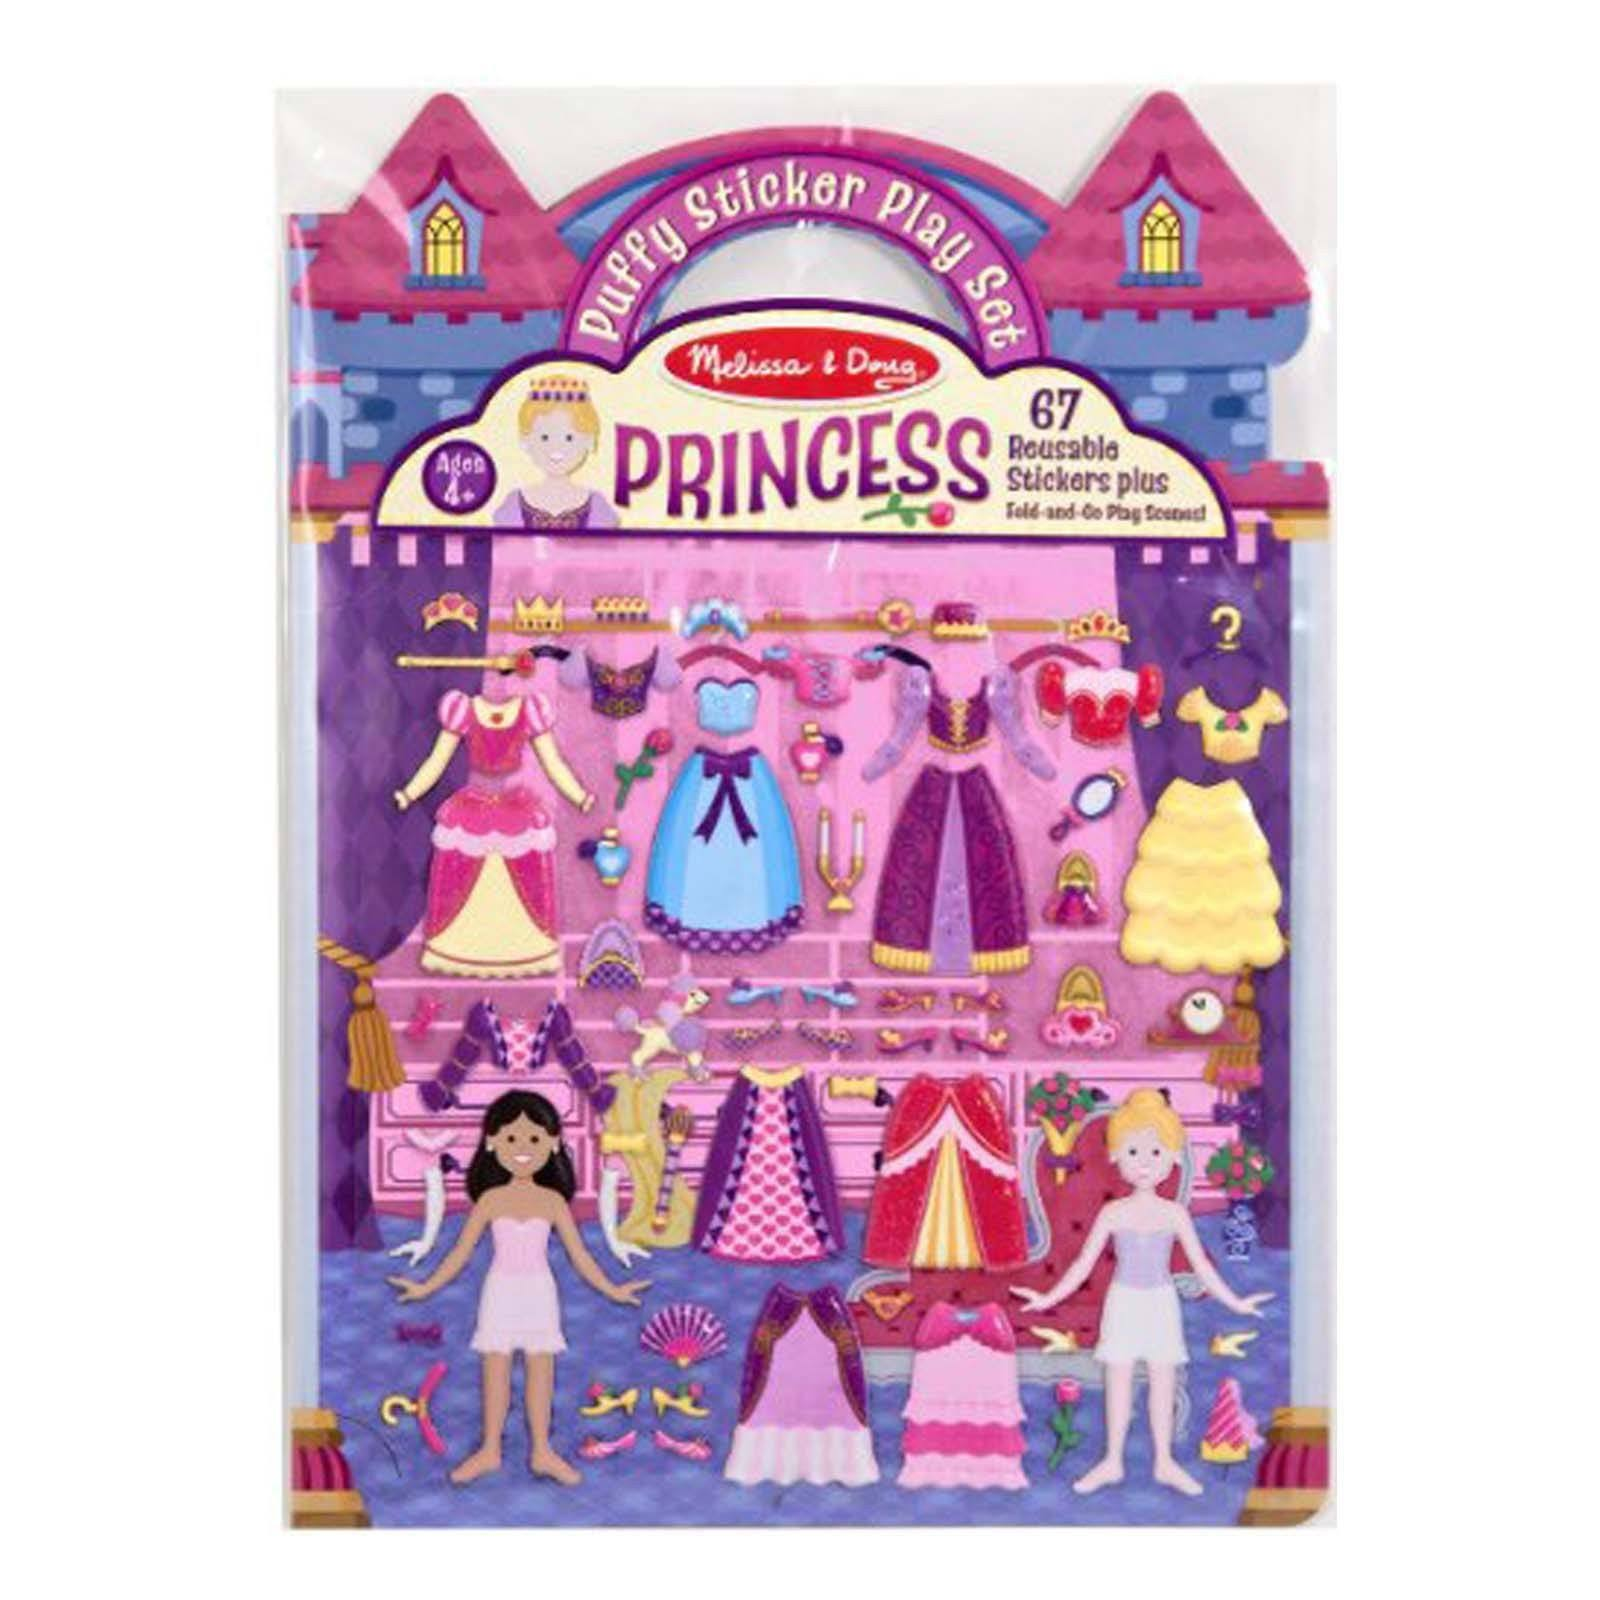 Melissa and Doug Puffy Sticker Playset - Princess